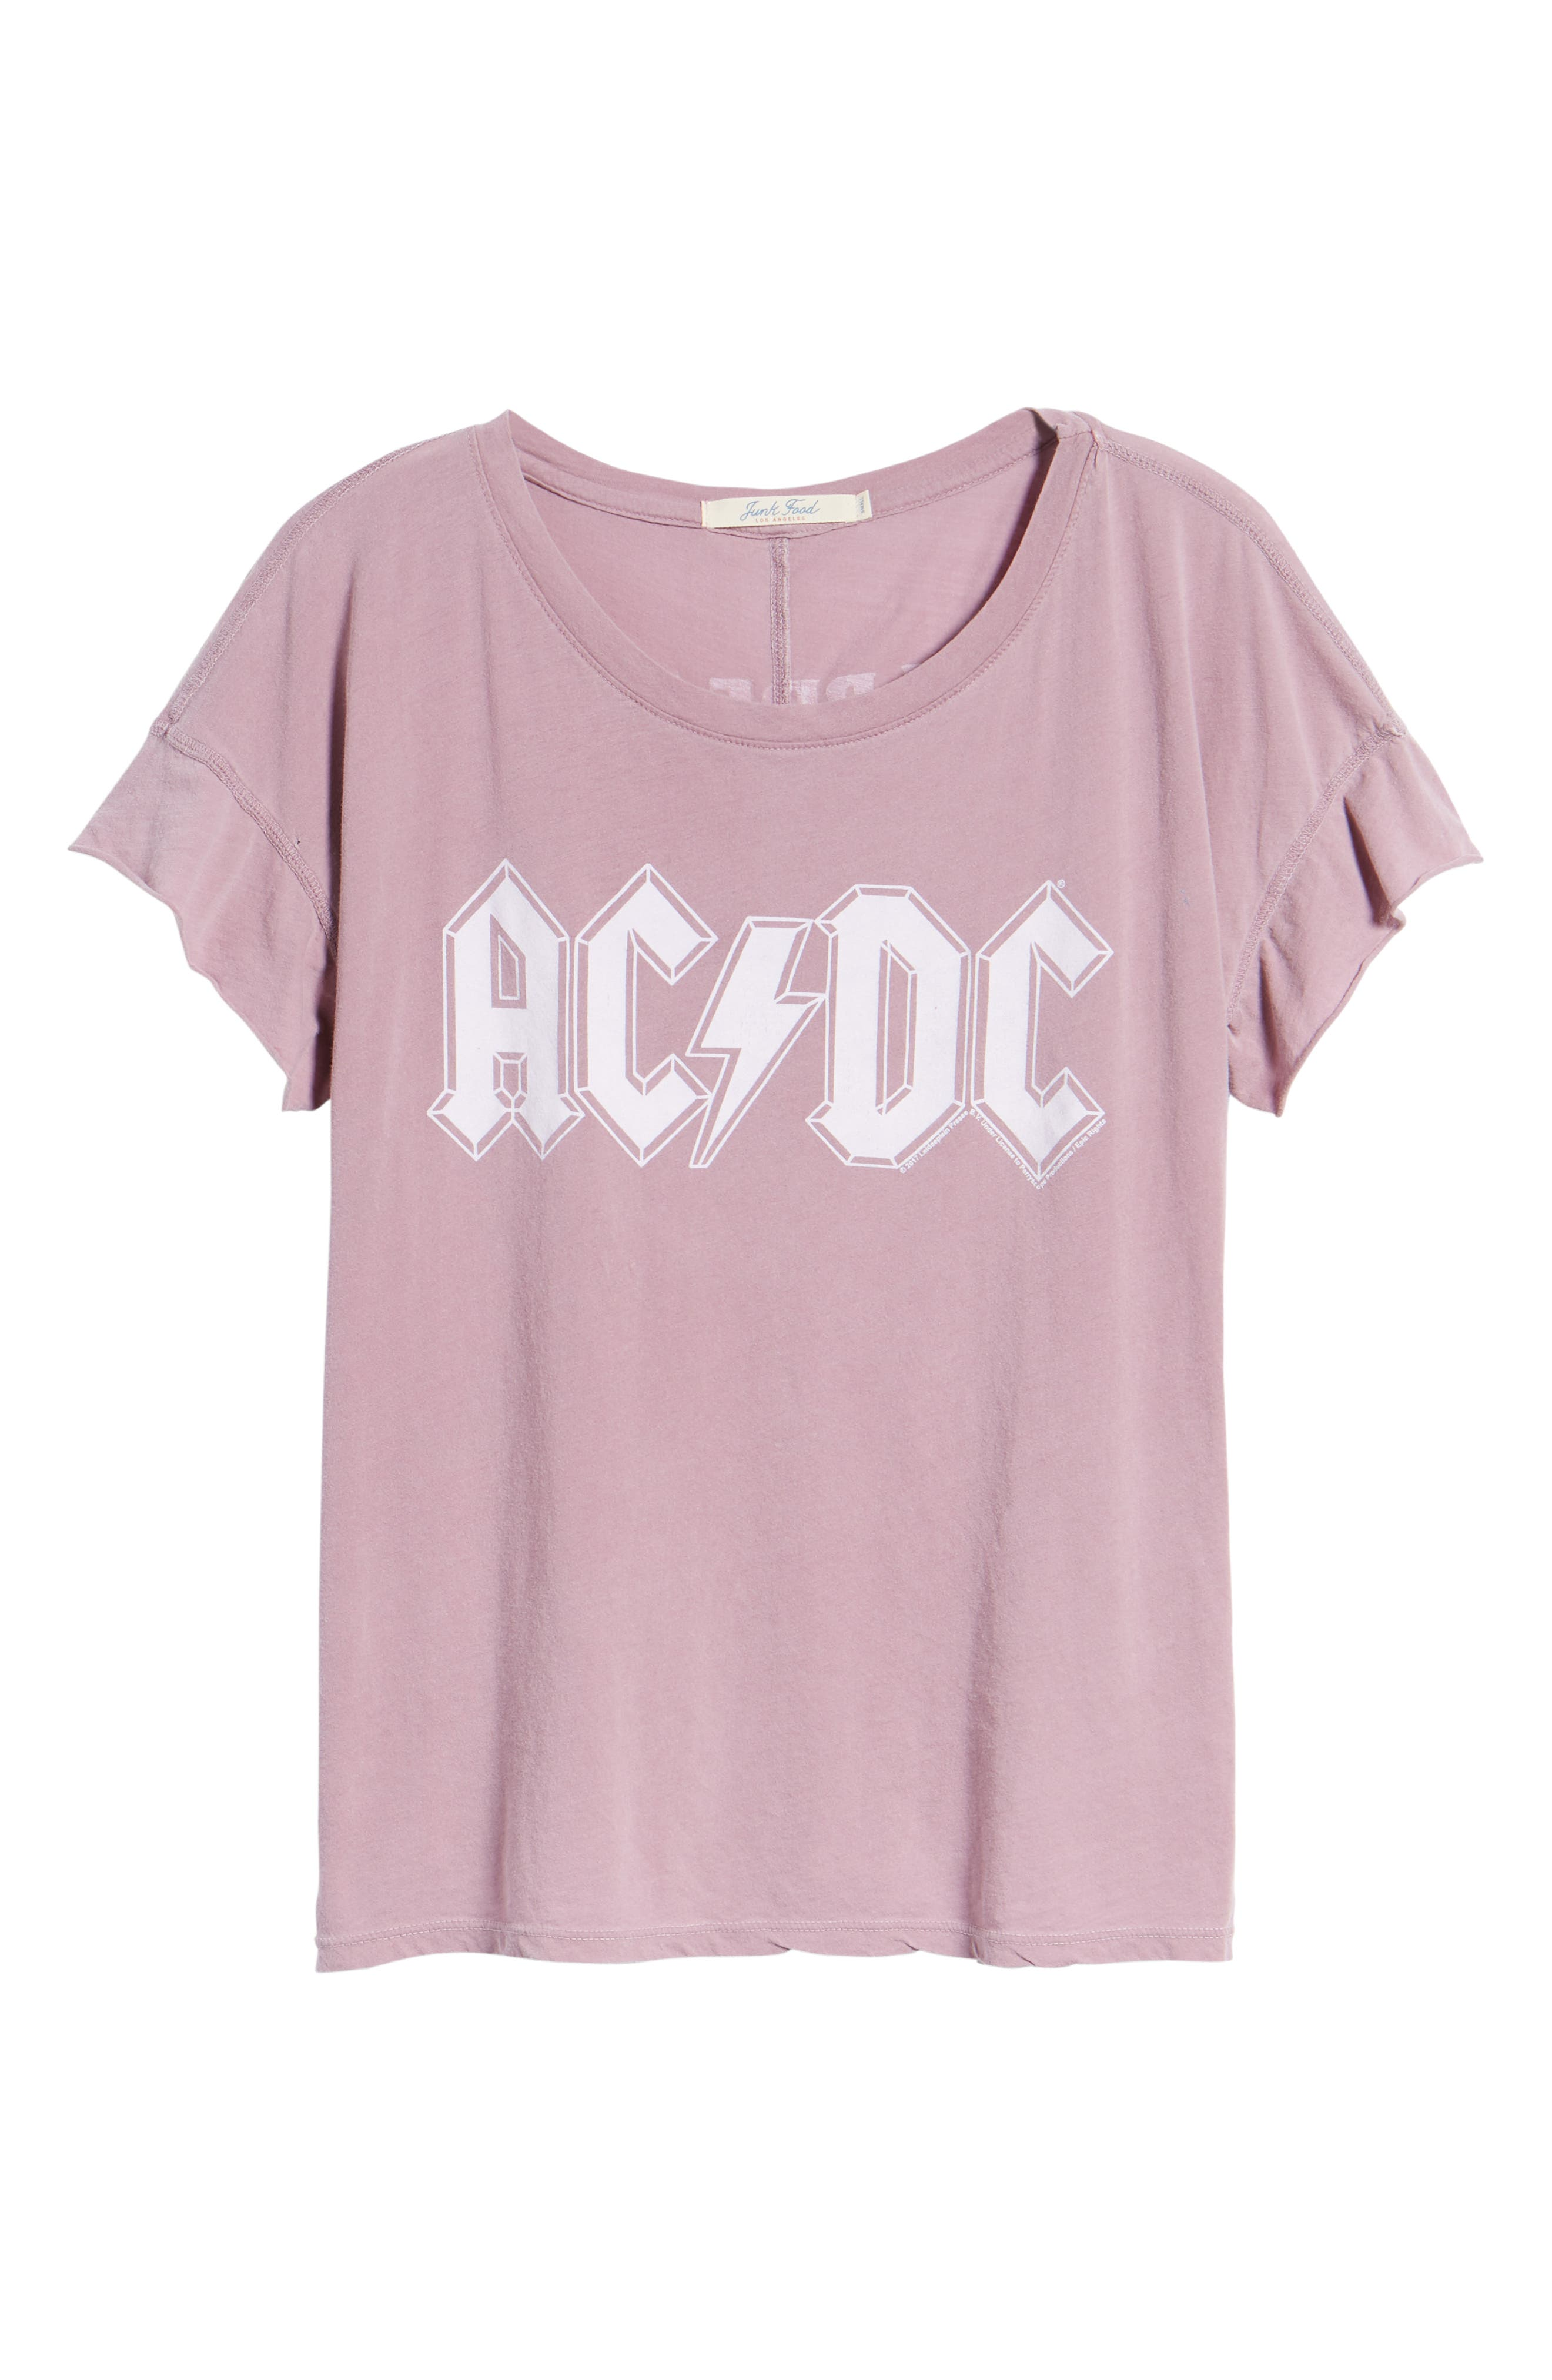 AC/DC Tee,                             Alternate thumbnail 7, color,                             614